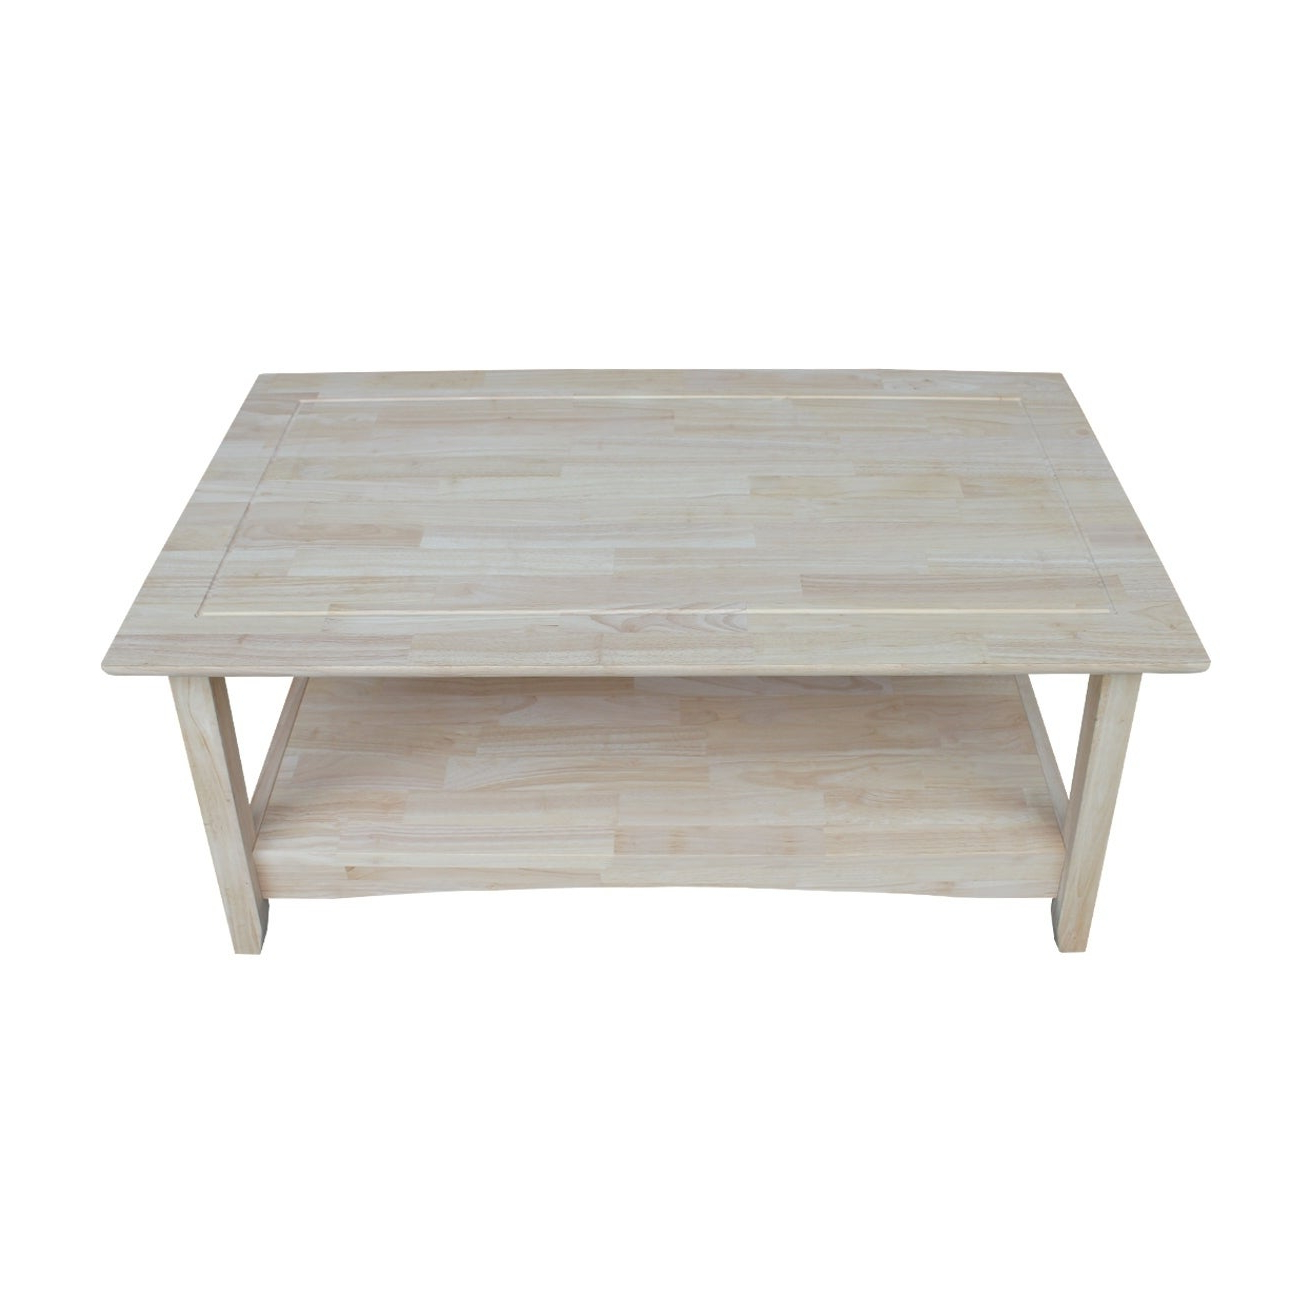 2019 Unfinished Solid Parawood Bombay Tall Lift Top Coffee Tables With Bombay Unfinished Solid Parawood Tall Coffee Table (Gallery 4 of 20)